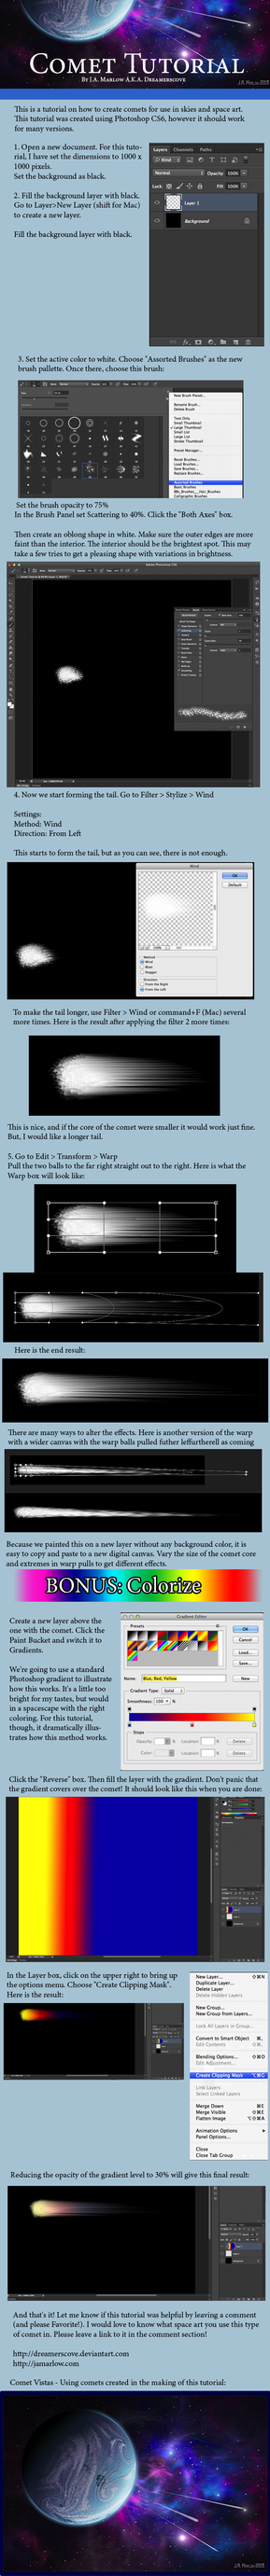 Comet Tutorial by dreamerscove